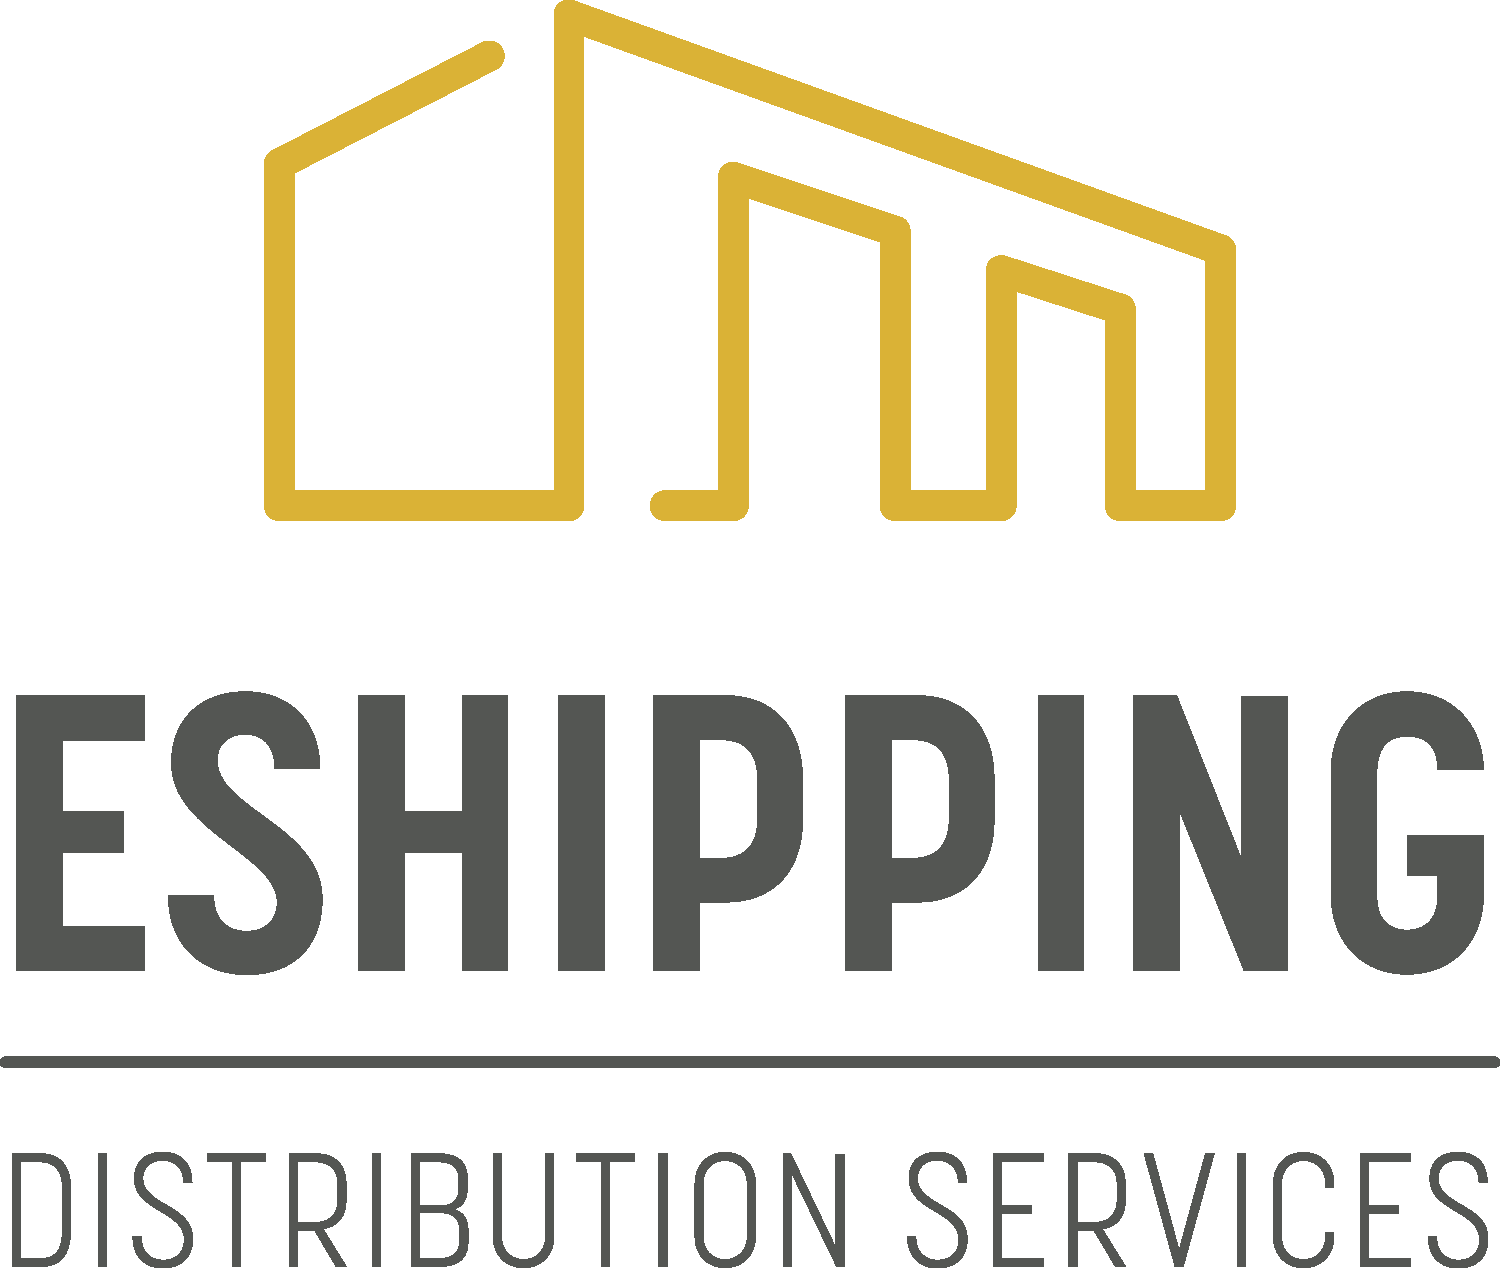 eShipping Distribution Full Color rgb trans.png